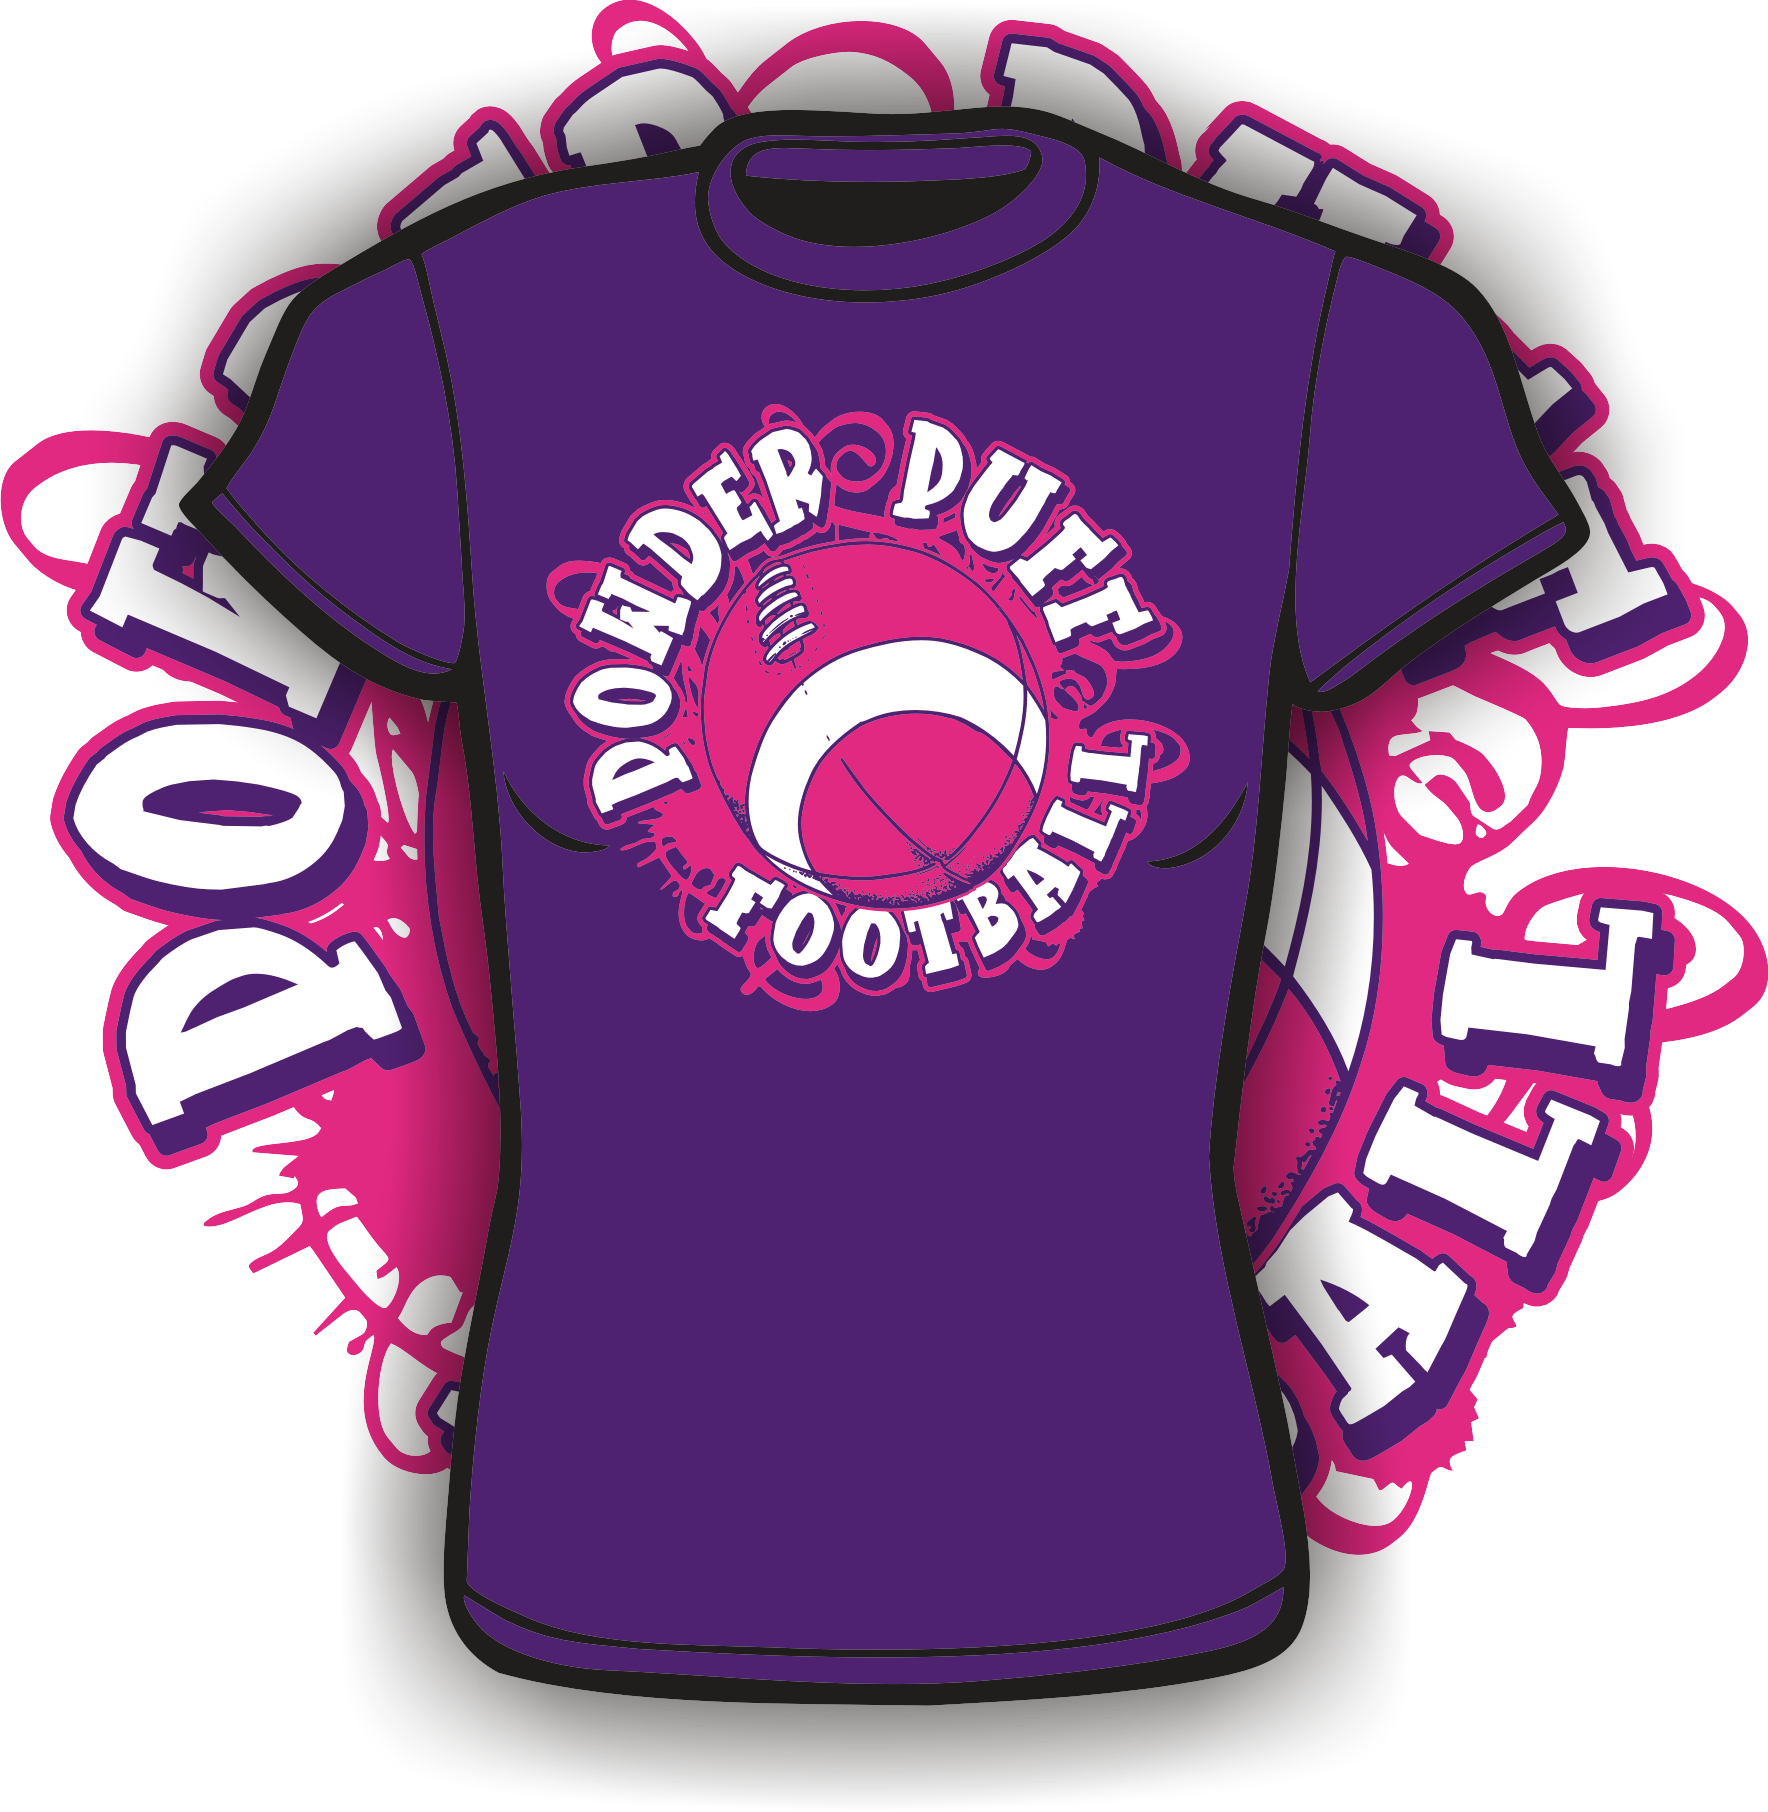 Powder puff football clipart picture transparent library Welcome to AKA Incorporated   Special-Tees Unlimited picture transparent library